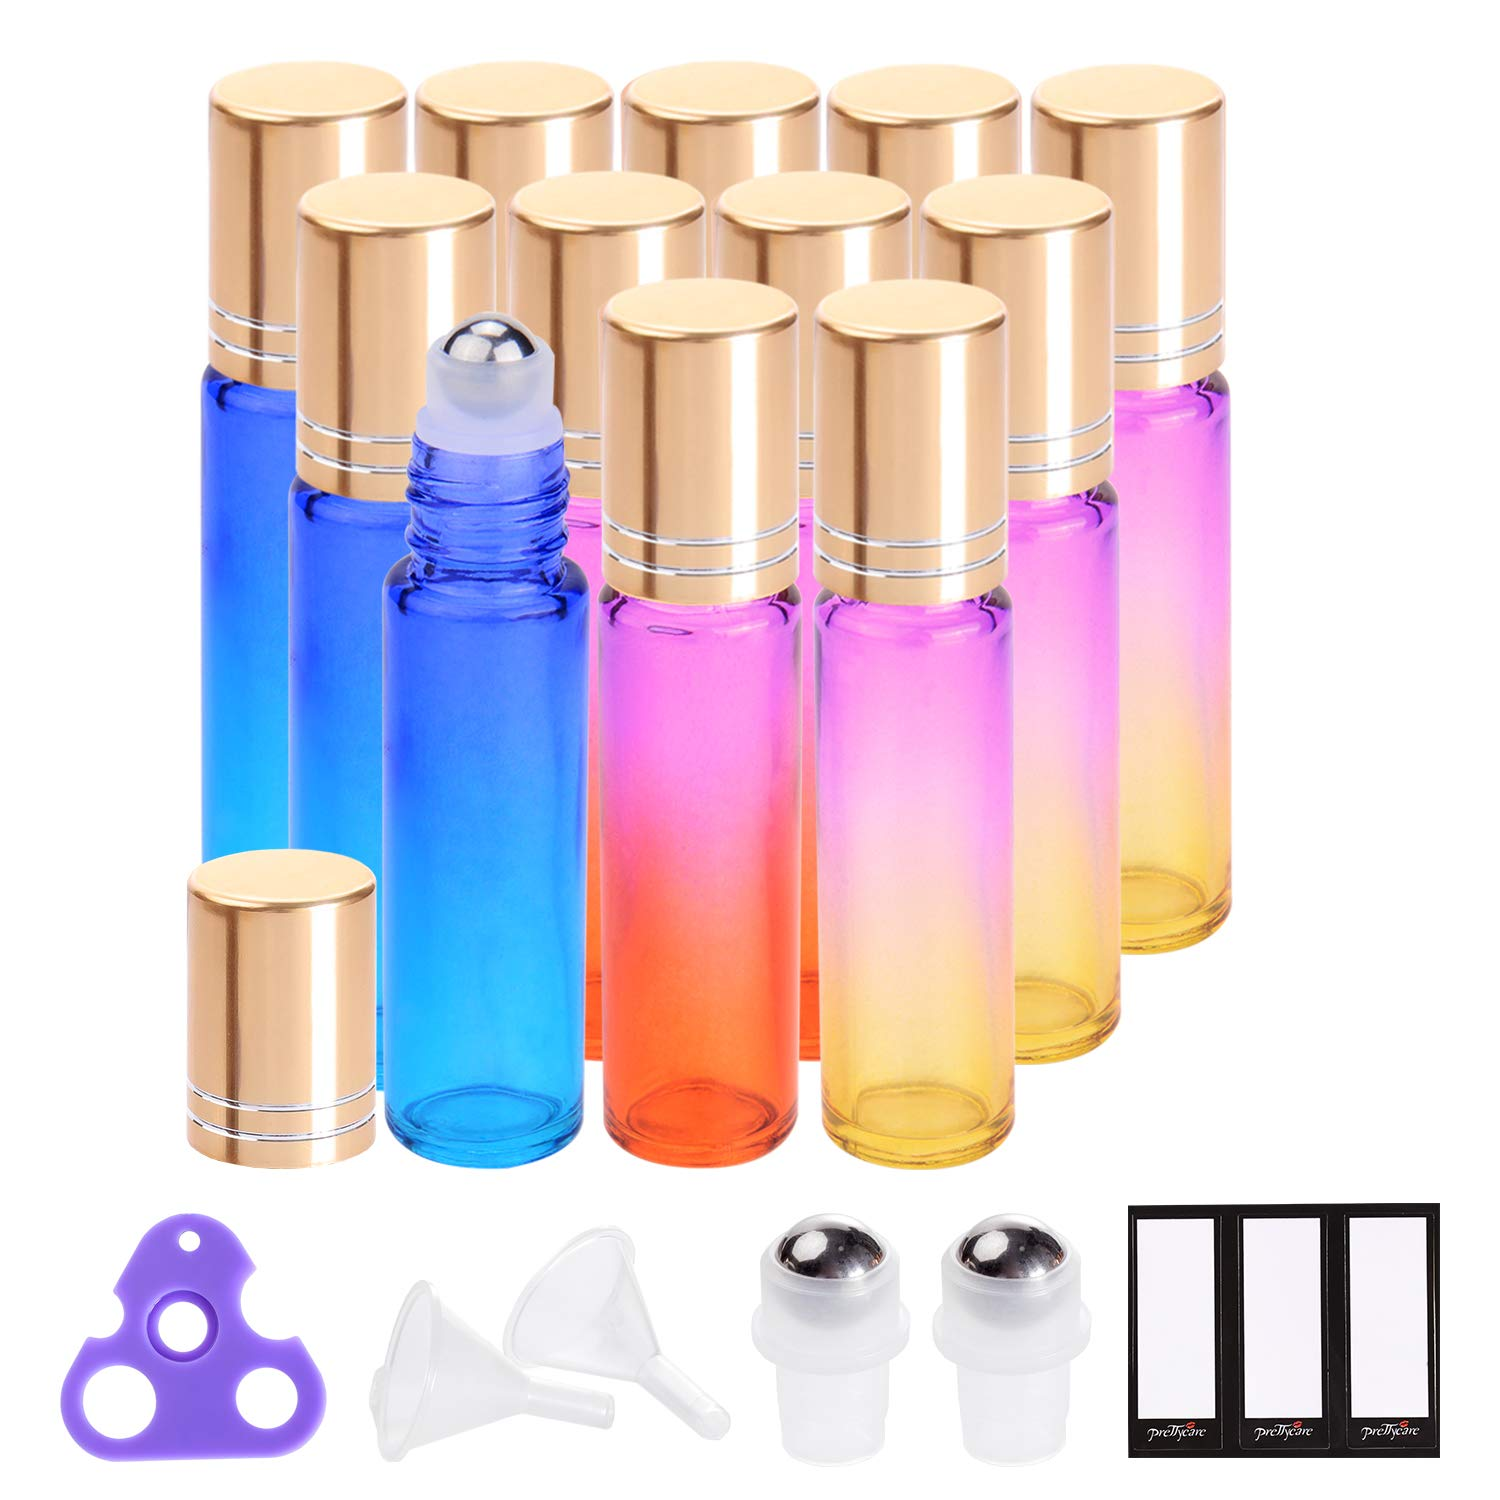 c108a82ed053 Essential Oil Roller Bottles 10ml by PrettyCare (12 Pack Rainbow Glass,  Golden Cap, 24 Labels, 2 Extra Roller Balls, Opener, 2 Funnels) Roller  Balls ...